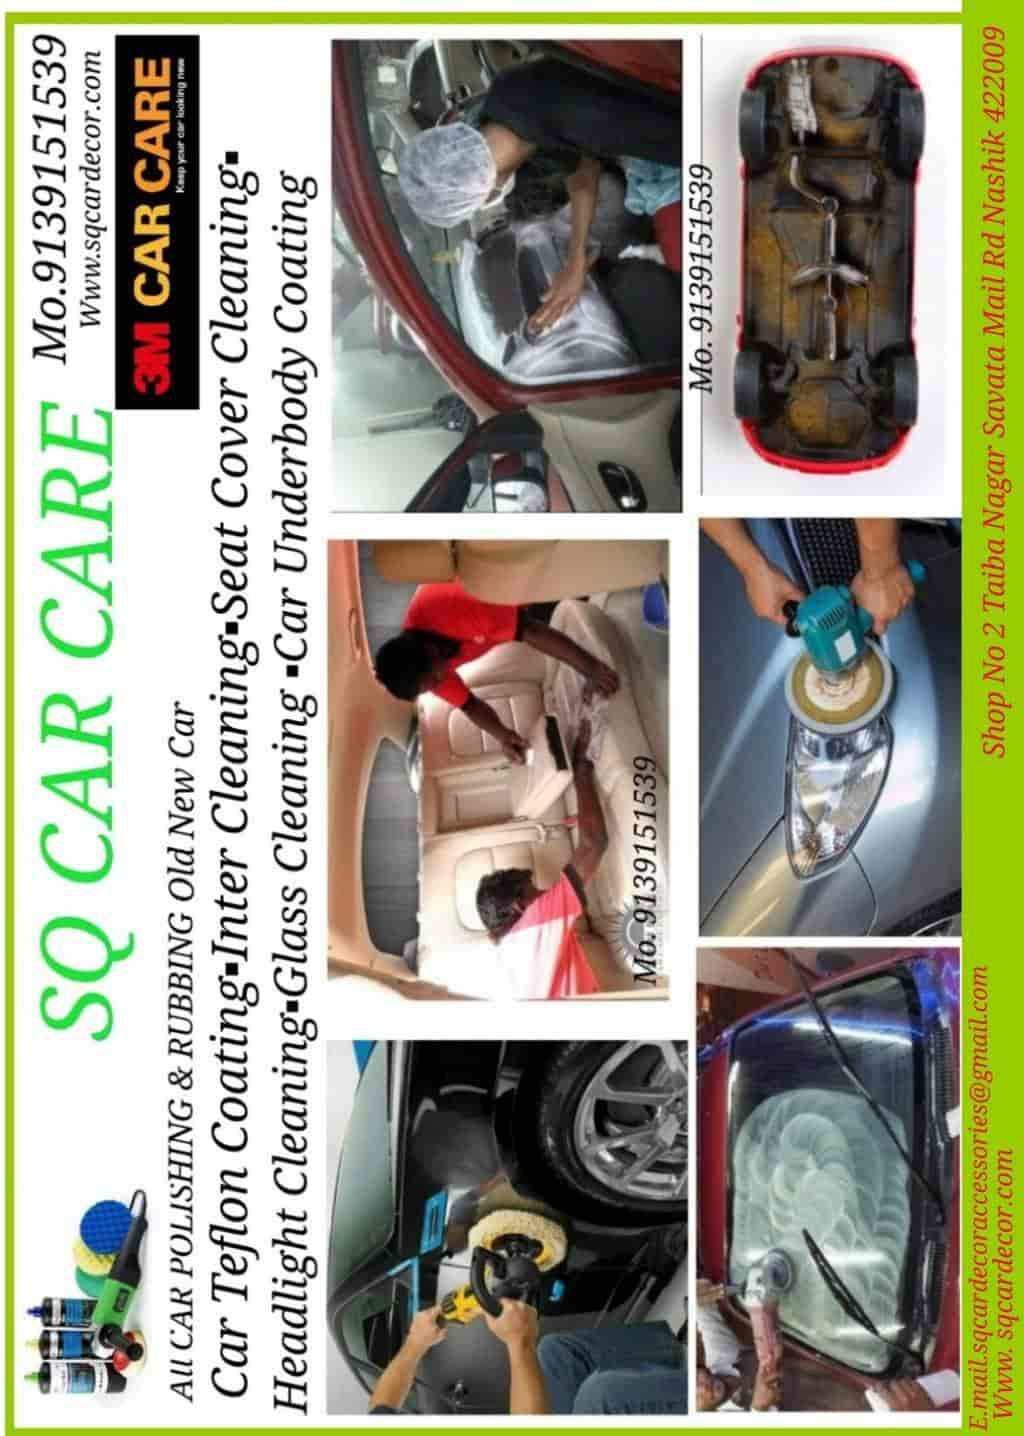 Maharashtra Car Accessories And Car Decor Dwarka Maharashtra Car